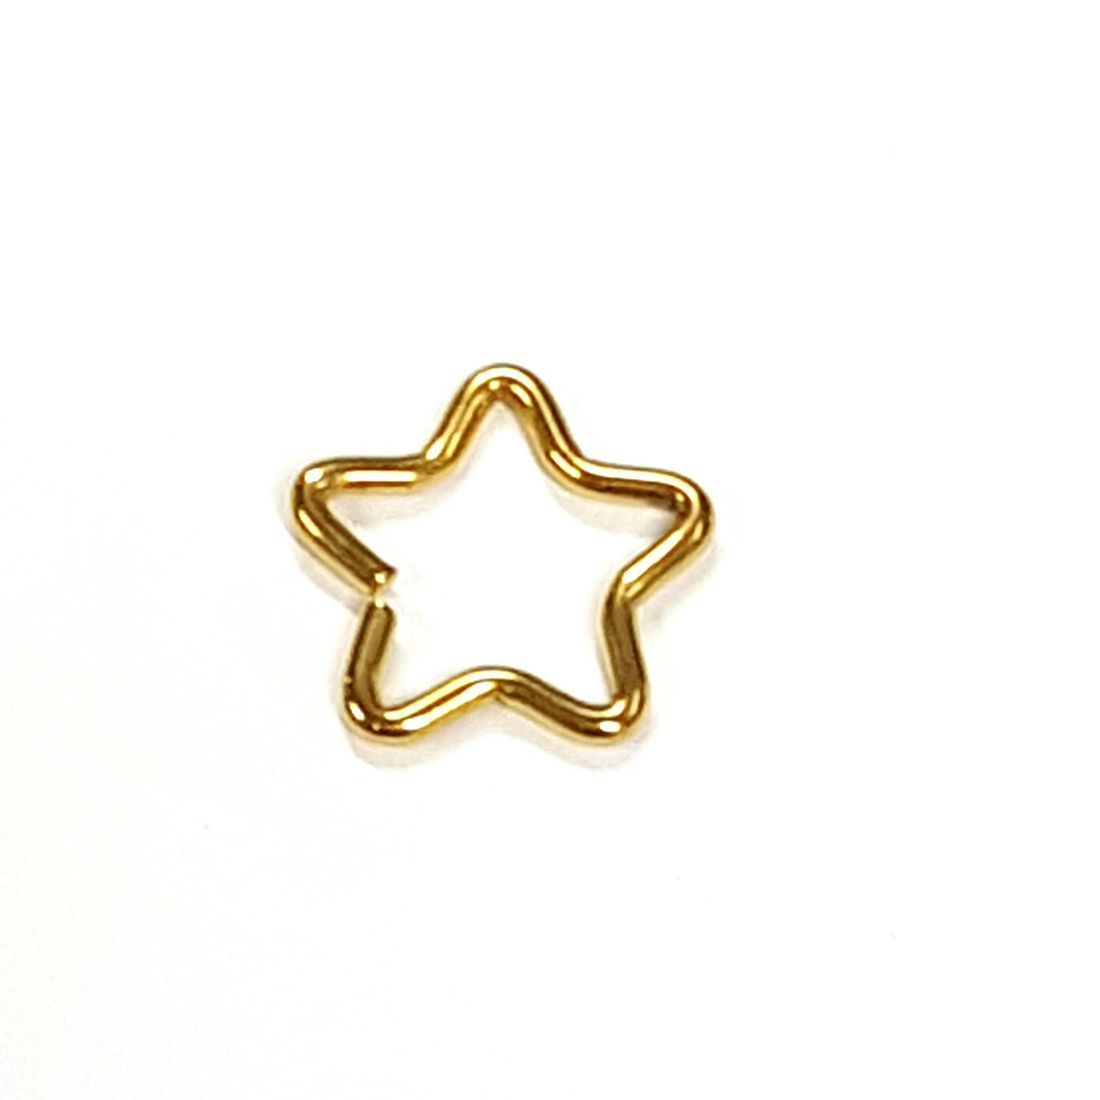 1.2mm x 8mm Gold Star   available at Kazbah online and our Leicester City Centre Shop